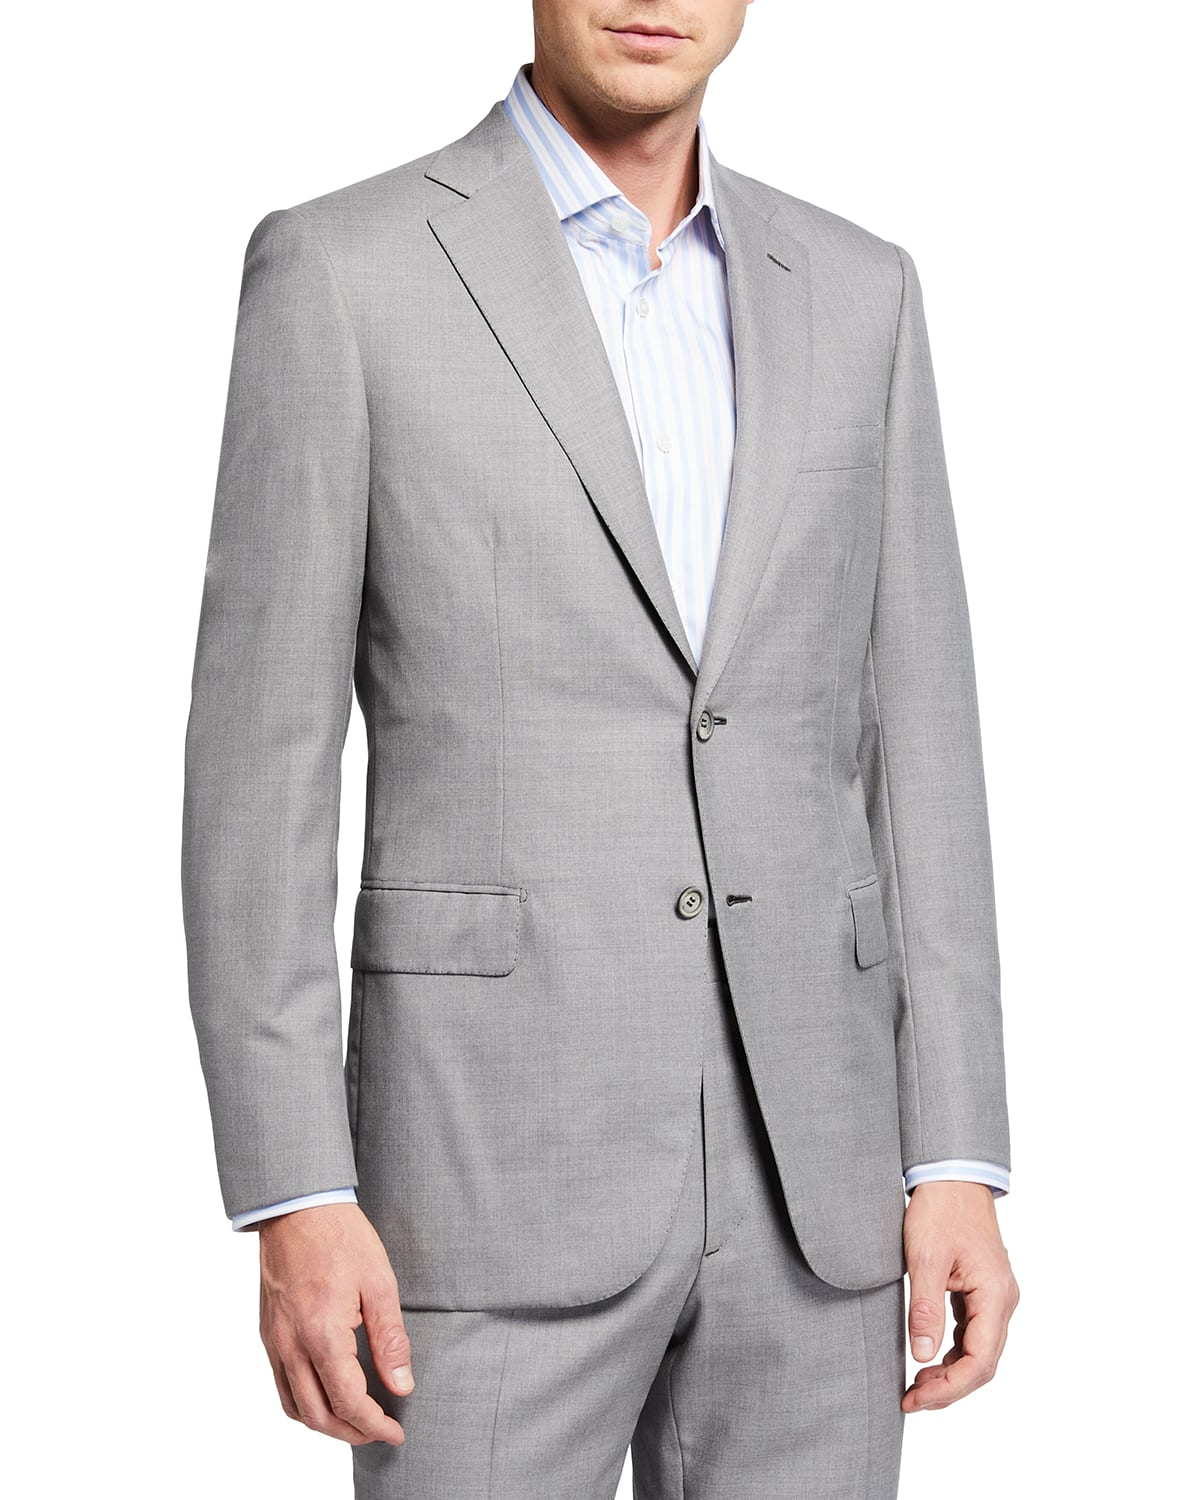 Men's Solid Two-Piece Wool Suit